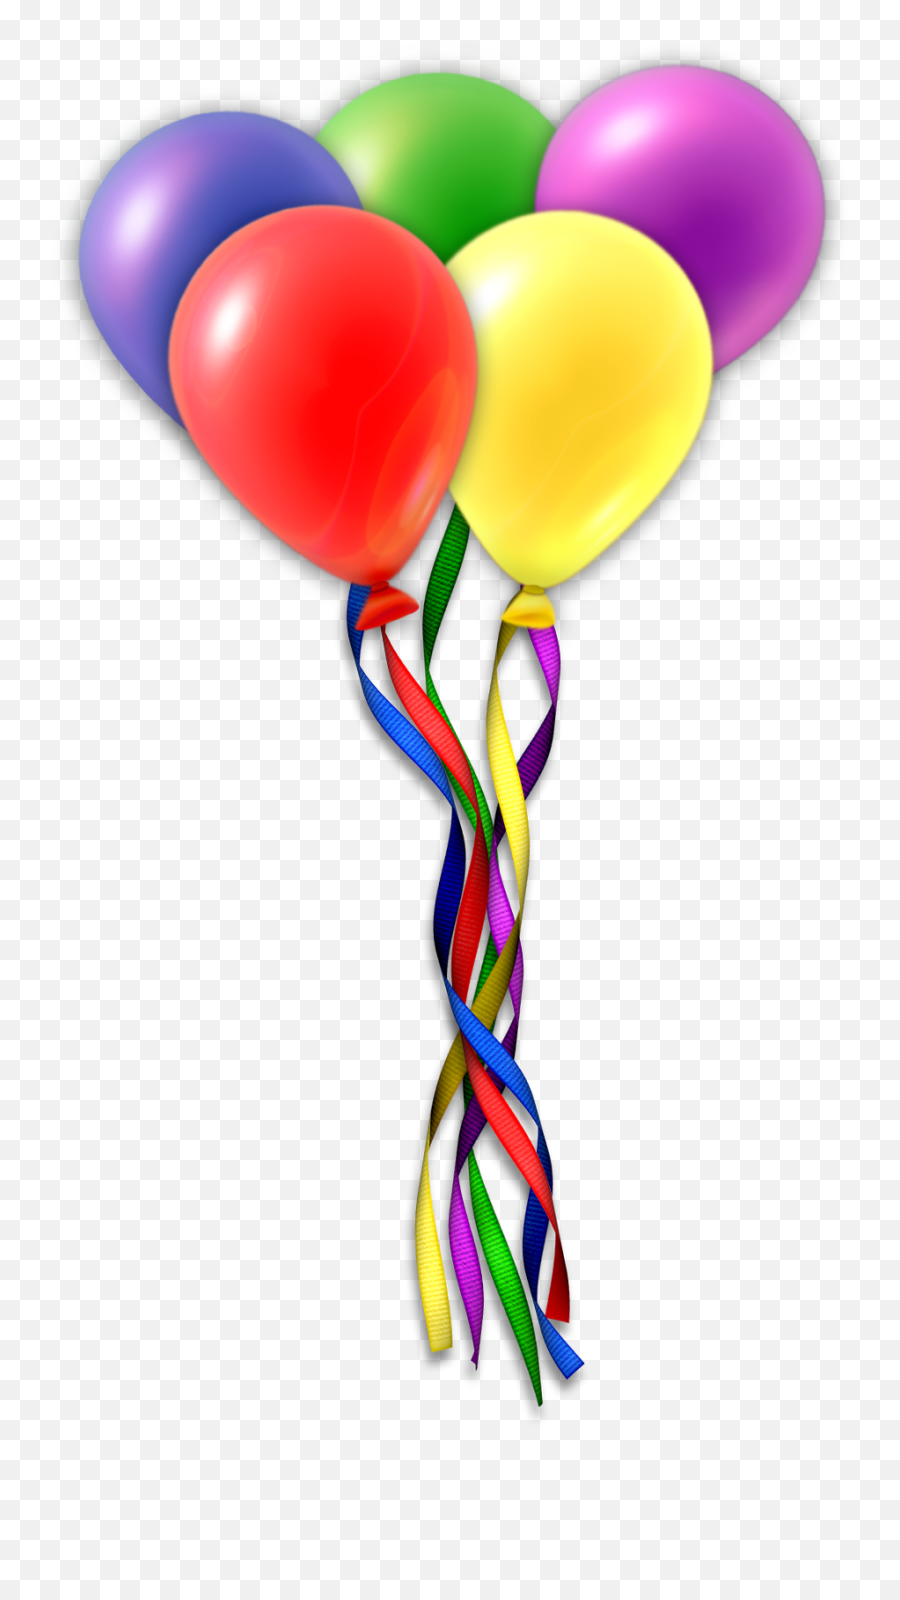 Free Birthday Balloons Png Download - Objects Made From Rubber Emoji